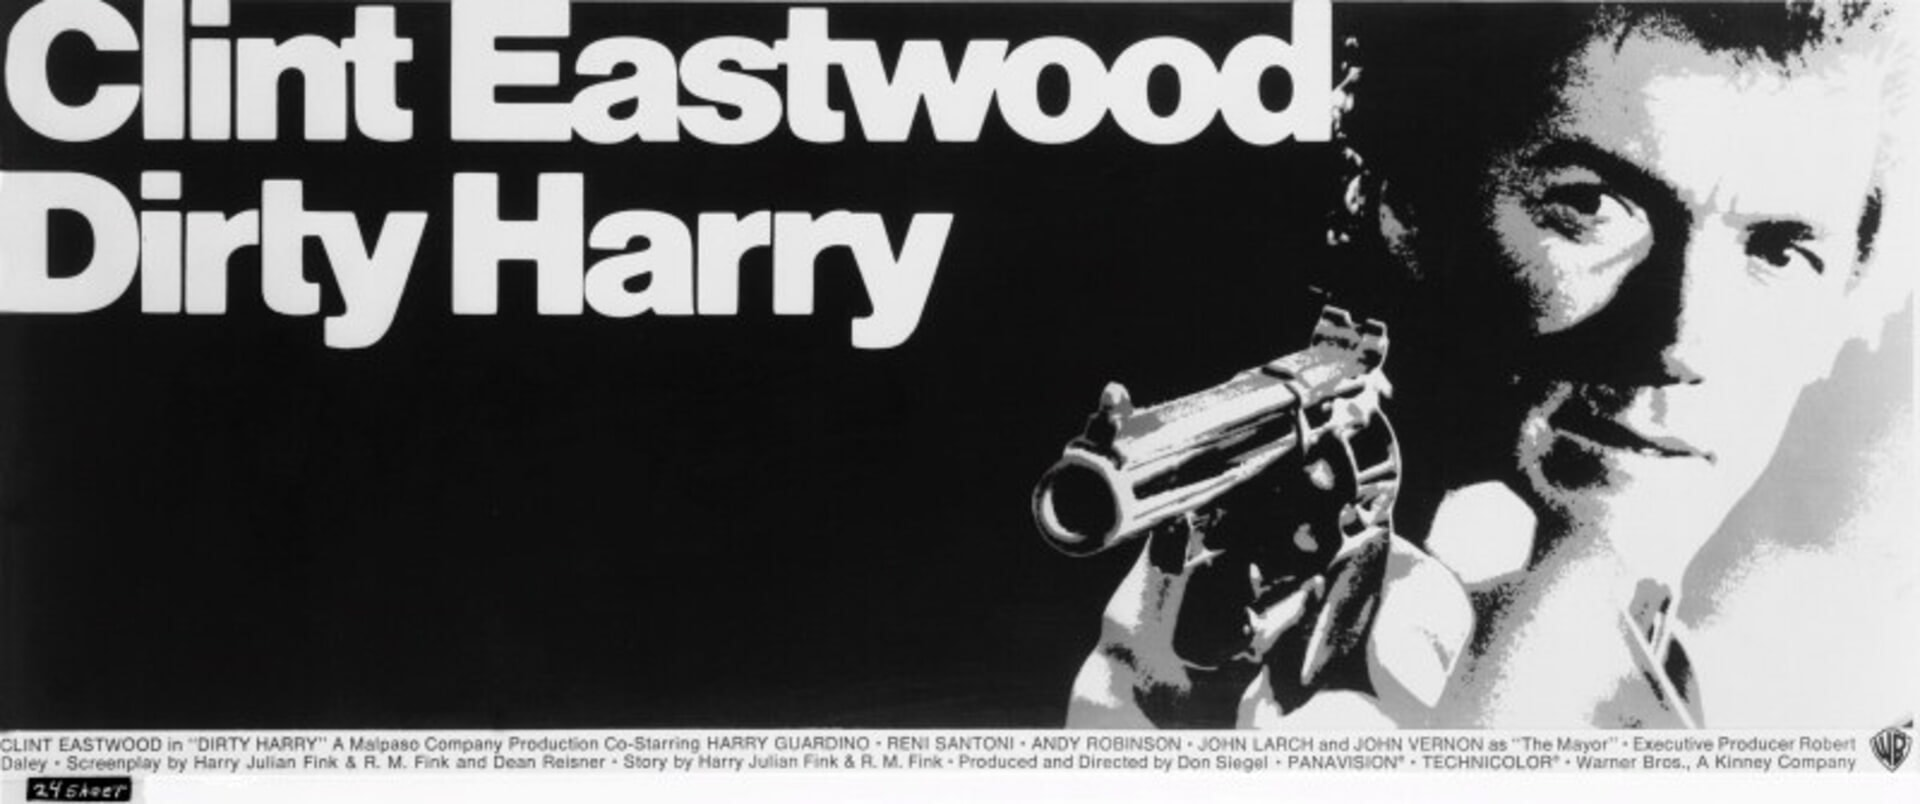 Dirty Harry - Poster 4